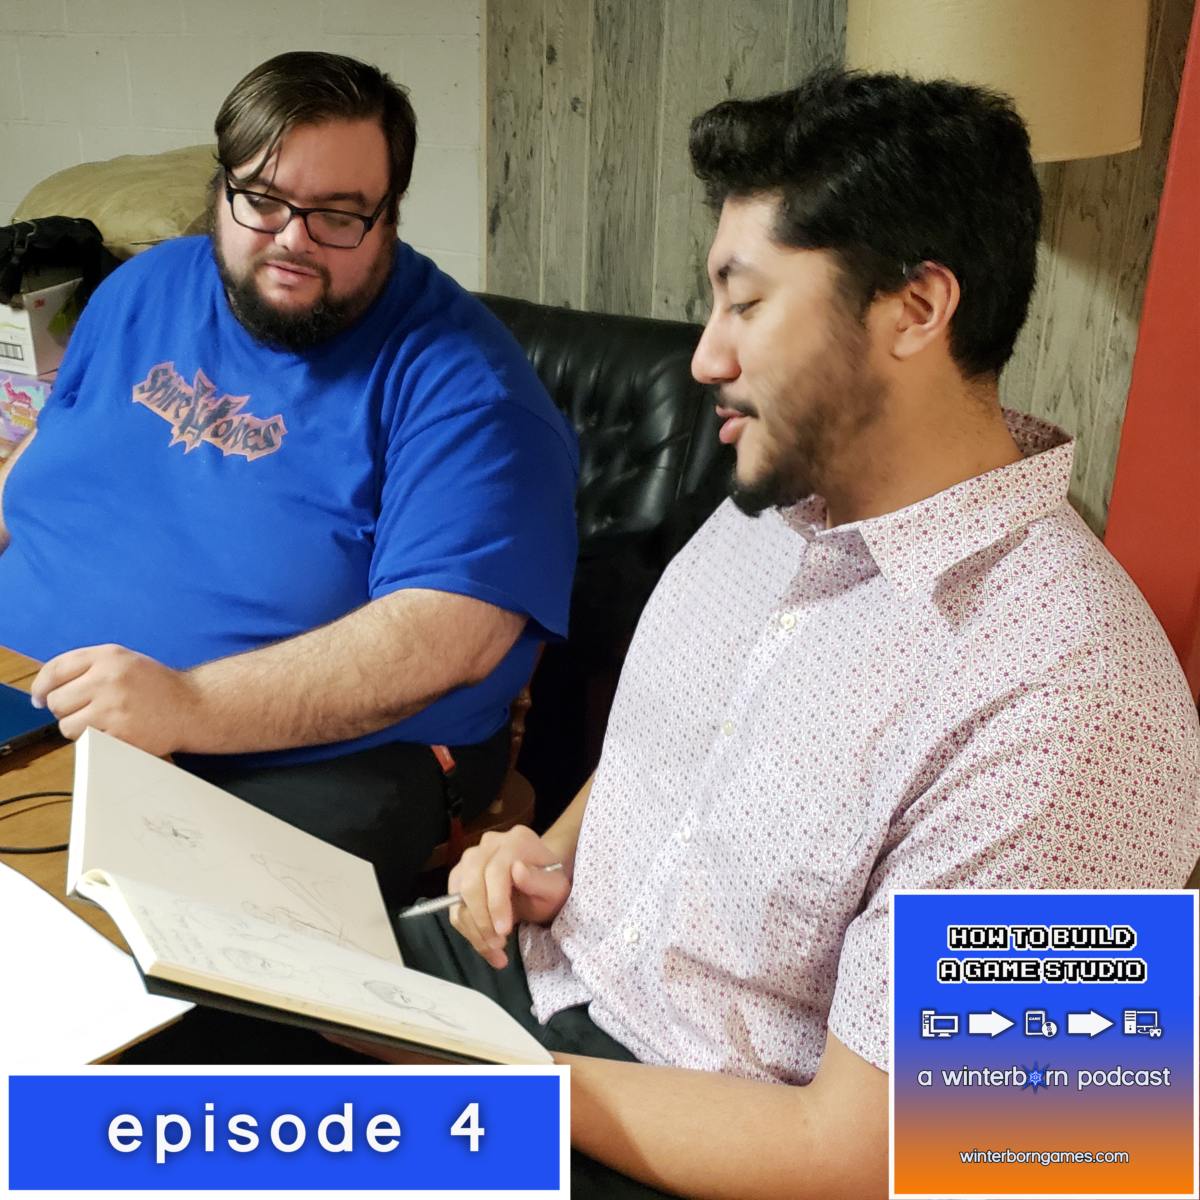 How To Build An RPG Fan – Episode 4 – Podcast